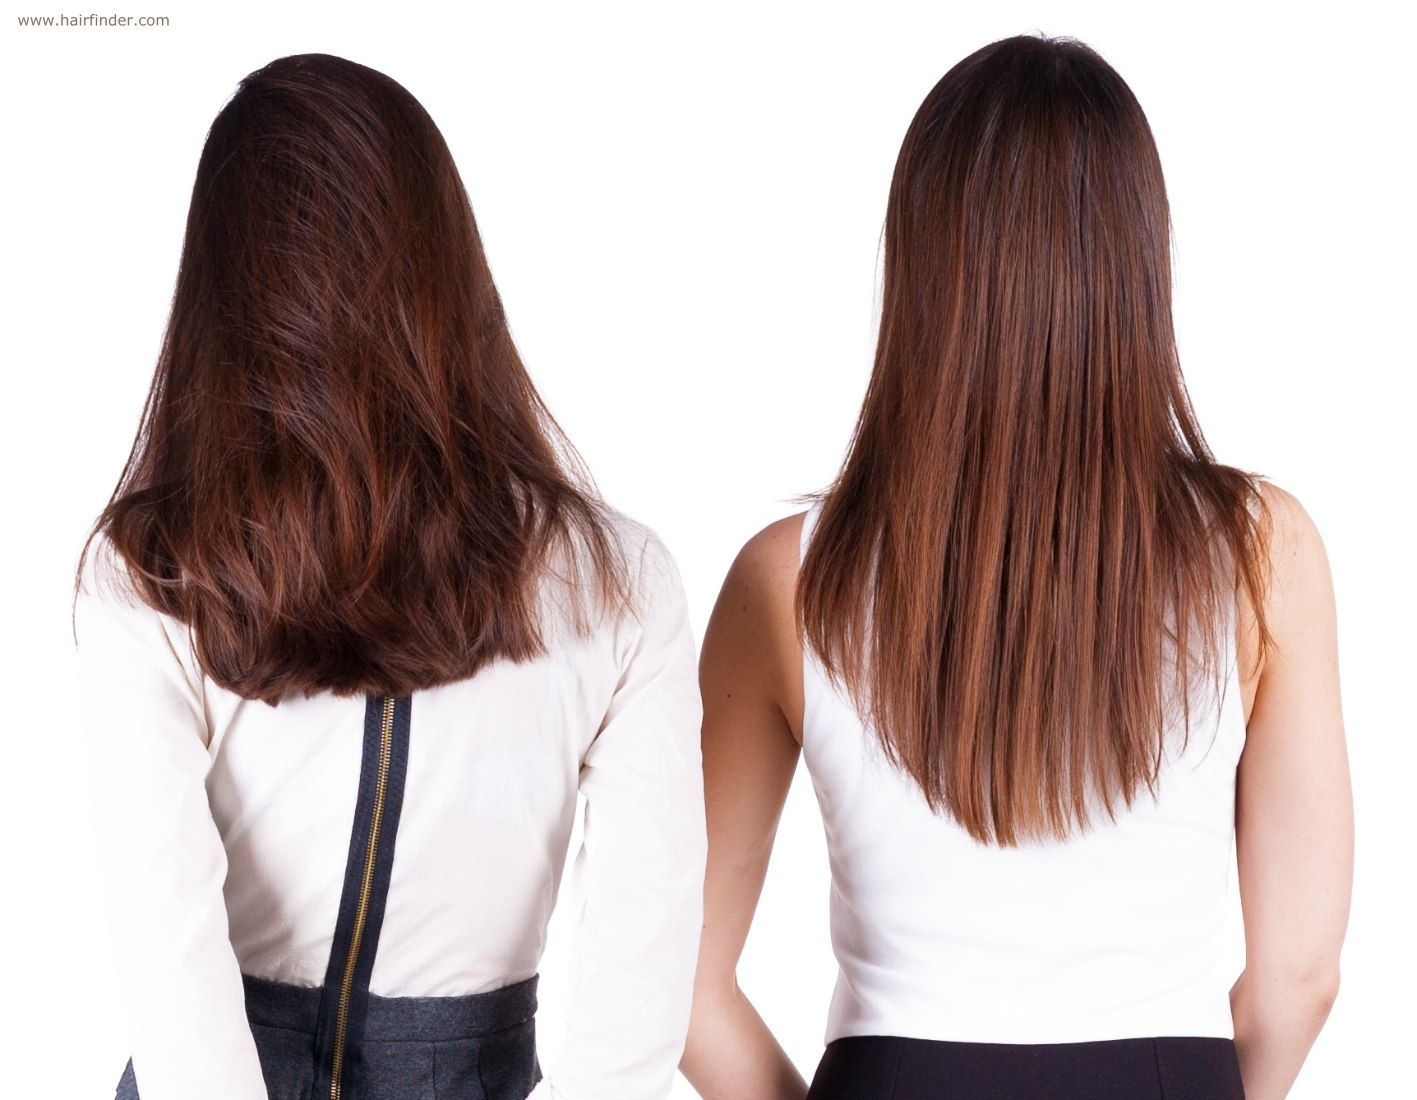 Cut The Back Of Long Hair In A U-Shape, V-Shape Or A Straight Line inside U Shape Hair Cut For Thin Hair